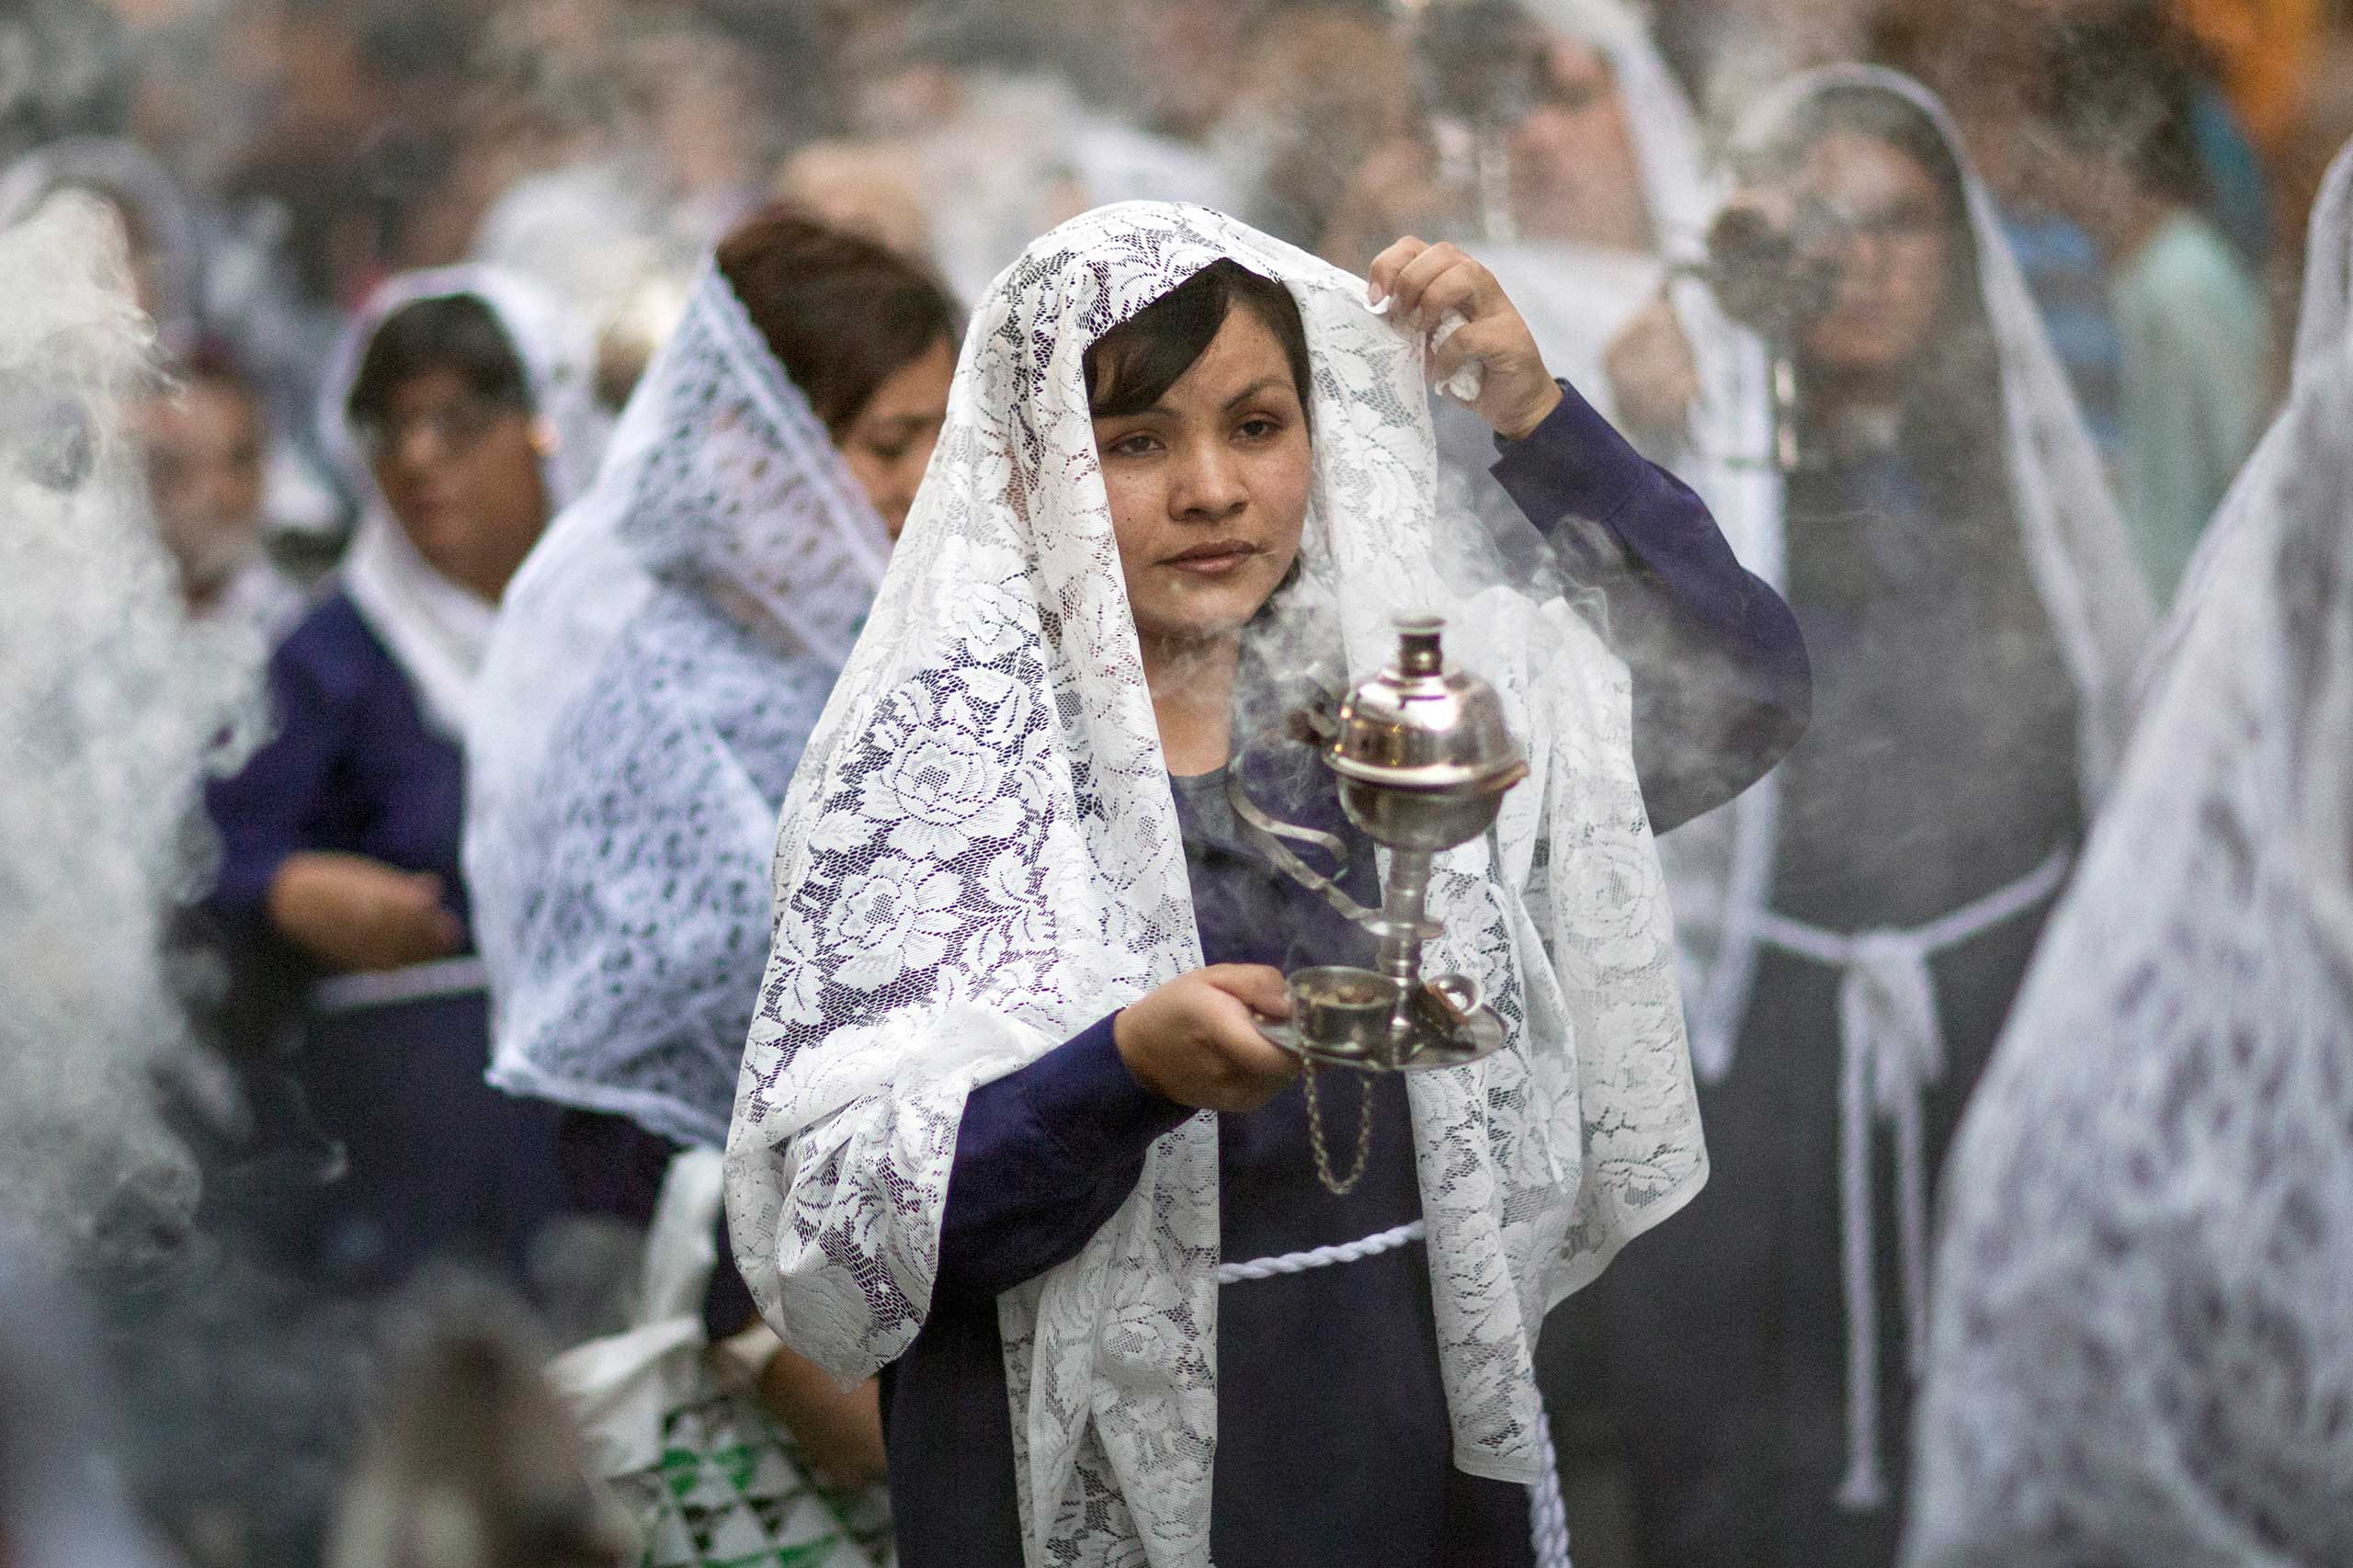 Oct. 26, 2014. Women carry censers as they participate in a procession honoring The Lord of Miracles the patron saint of most Catholic Peruvians, in Madrid.